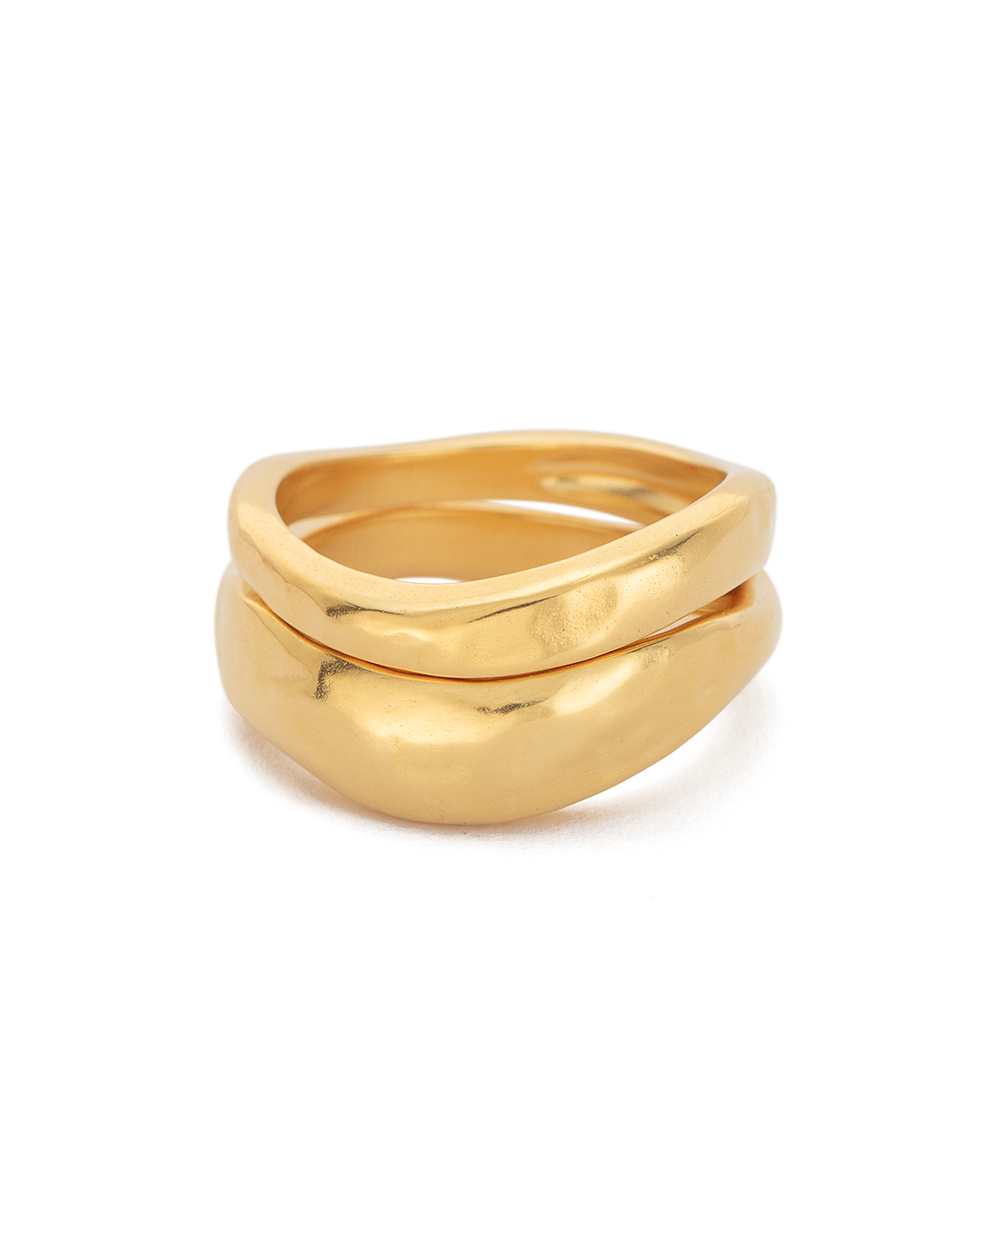 ESSENCE STACKING RING SET (18K-GOLD-PLATED) - SIDE